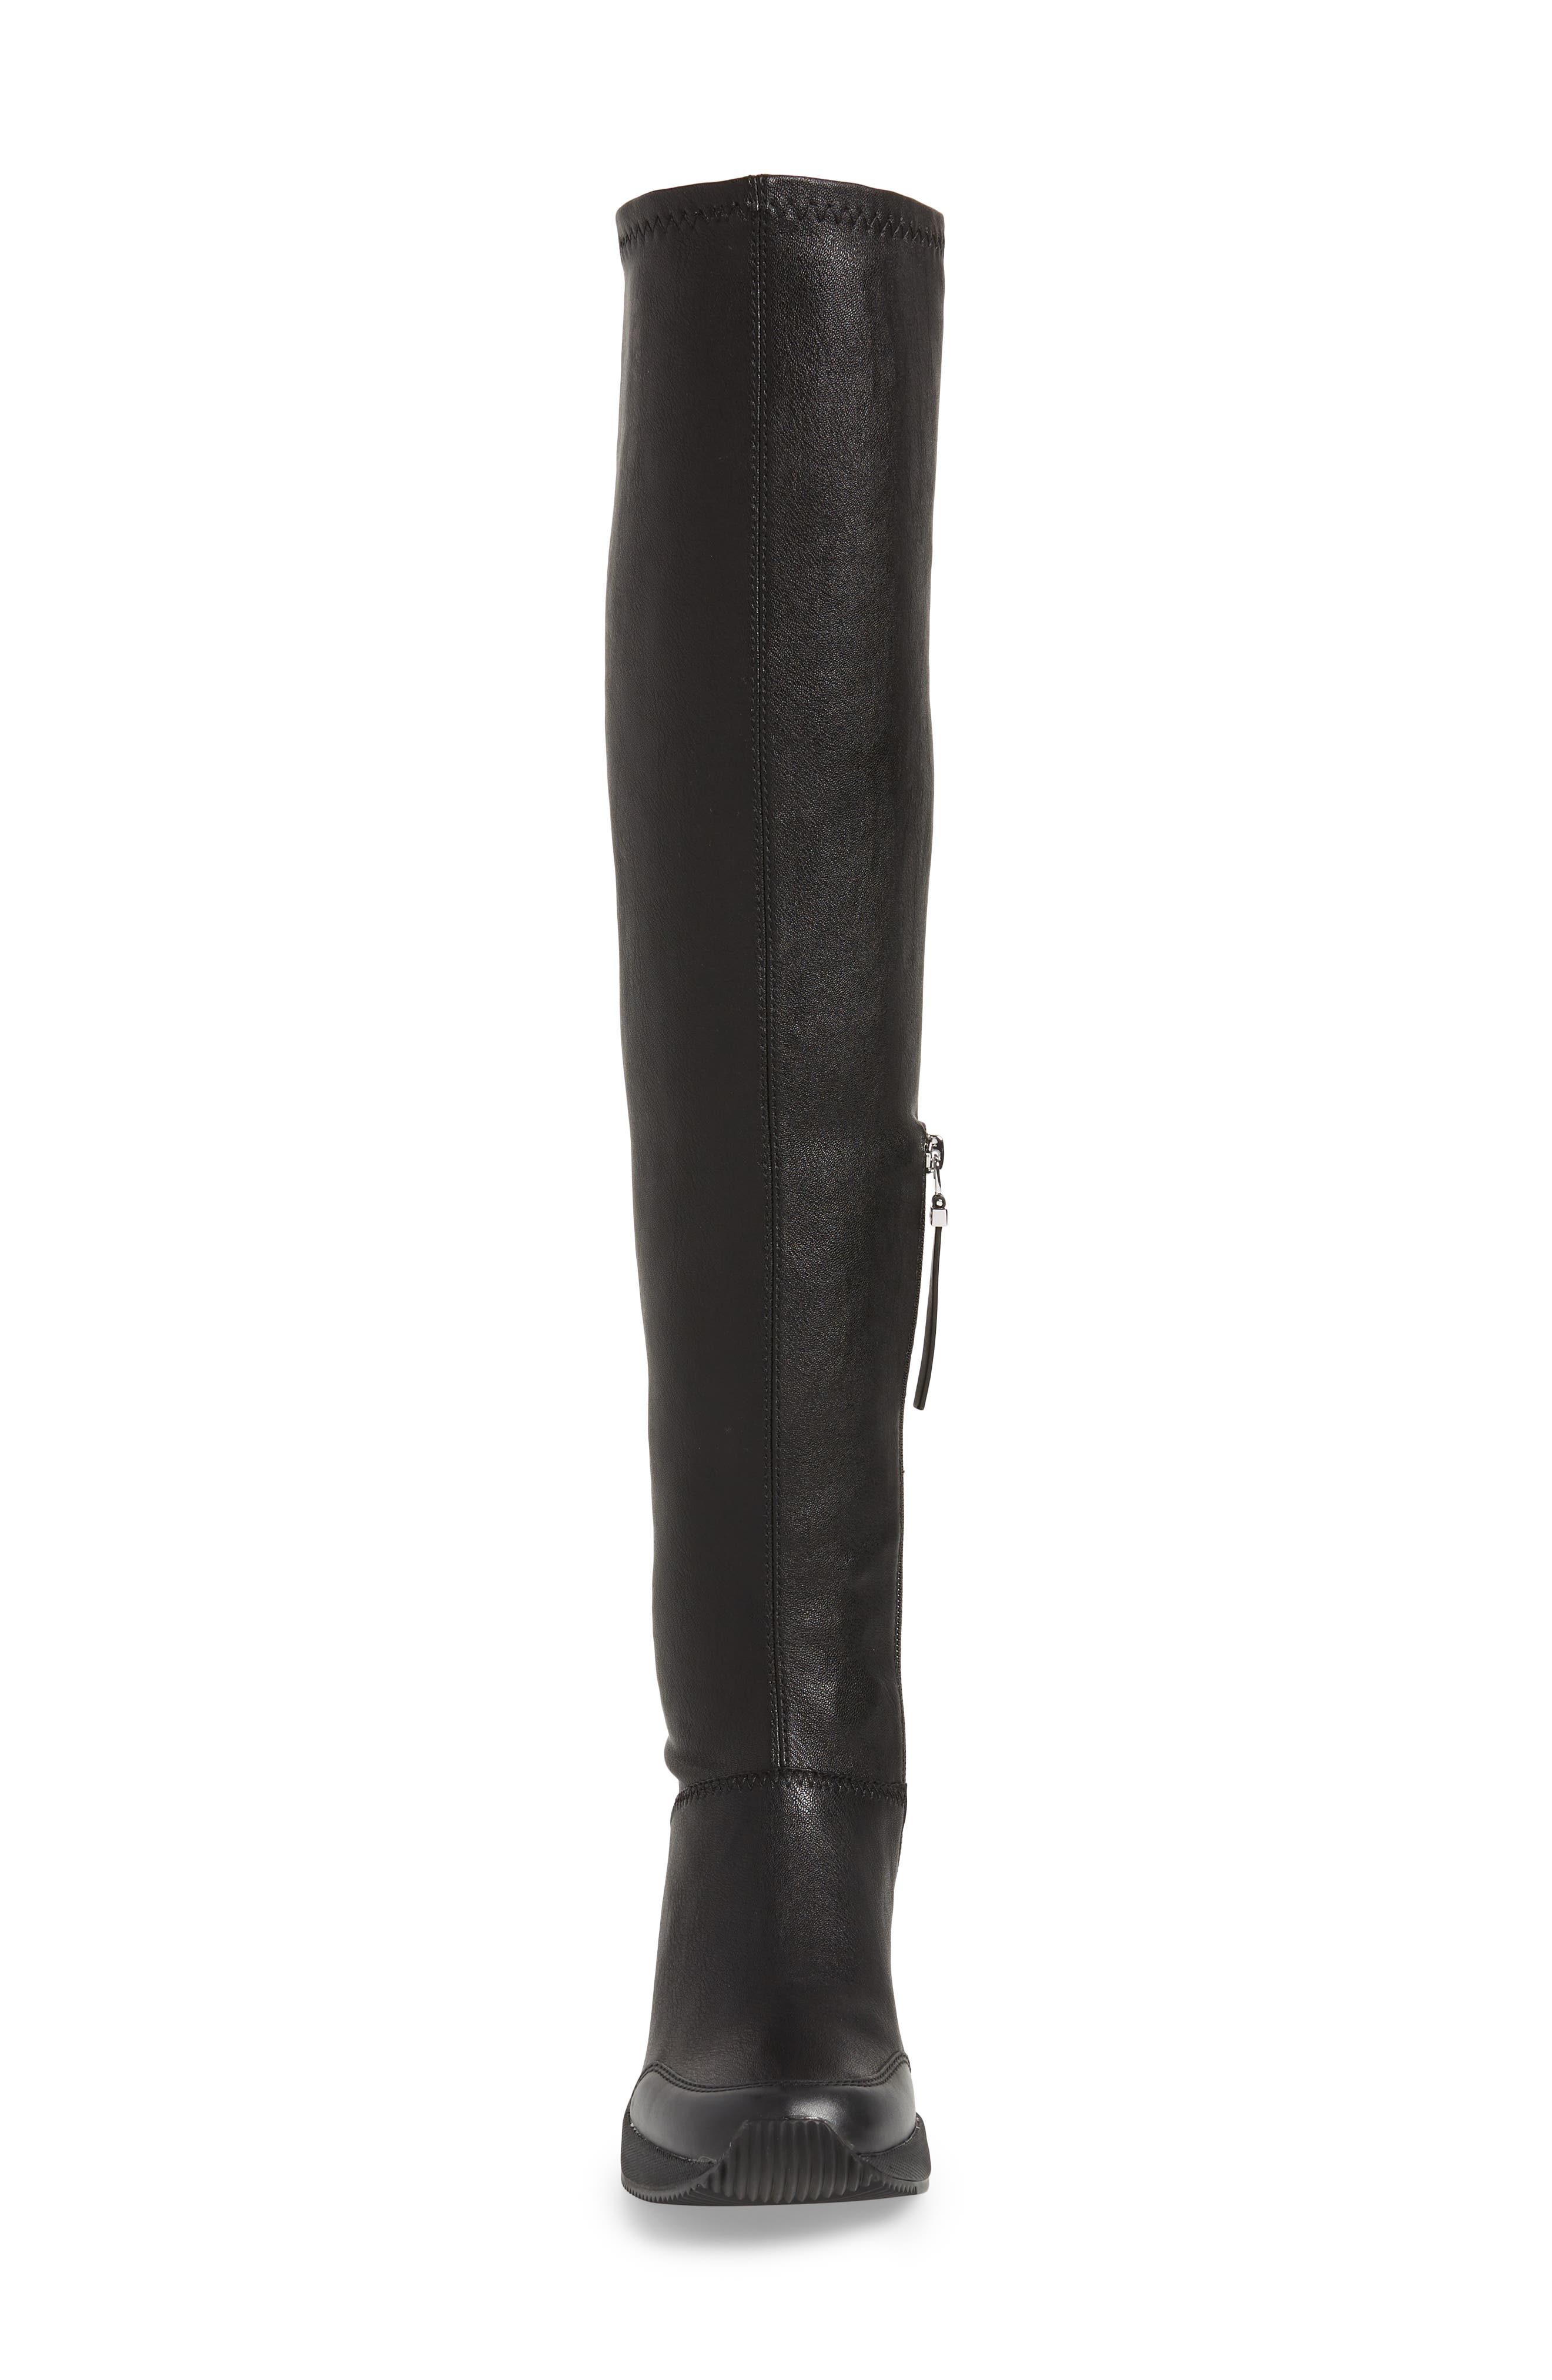 Tipton Wedge Over the Knee Rain Boot,                             Alternate thumbnail 4, color,                             BLACK FAUX LEATHER